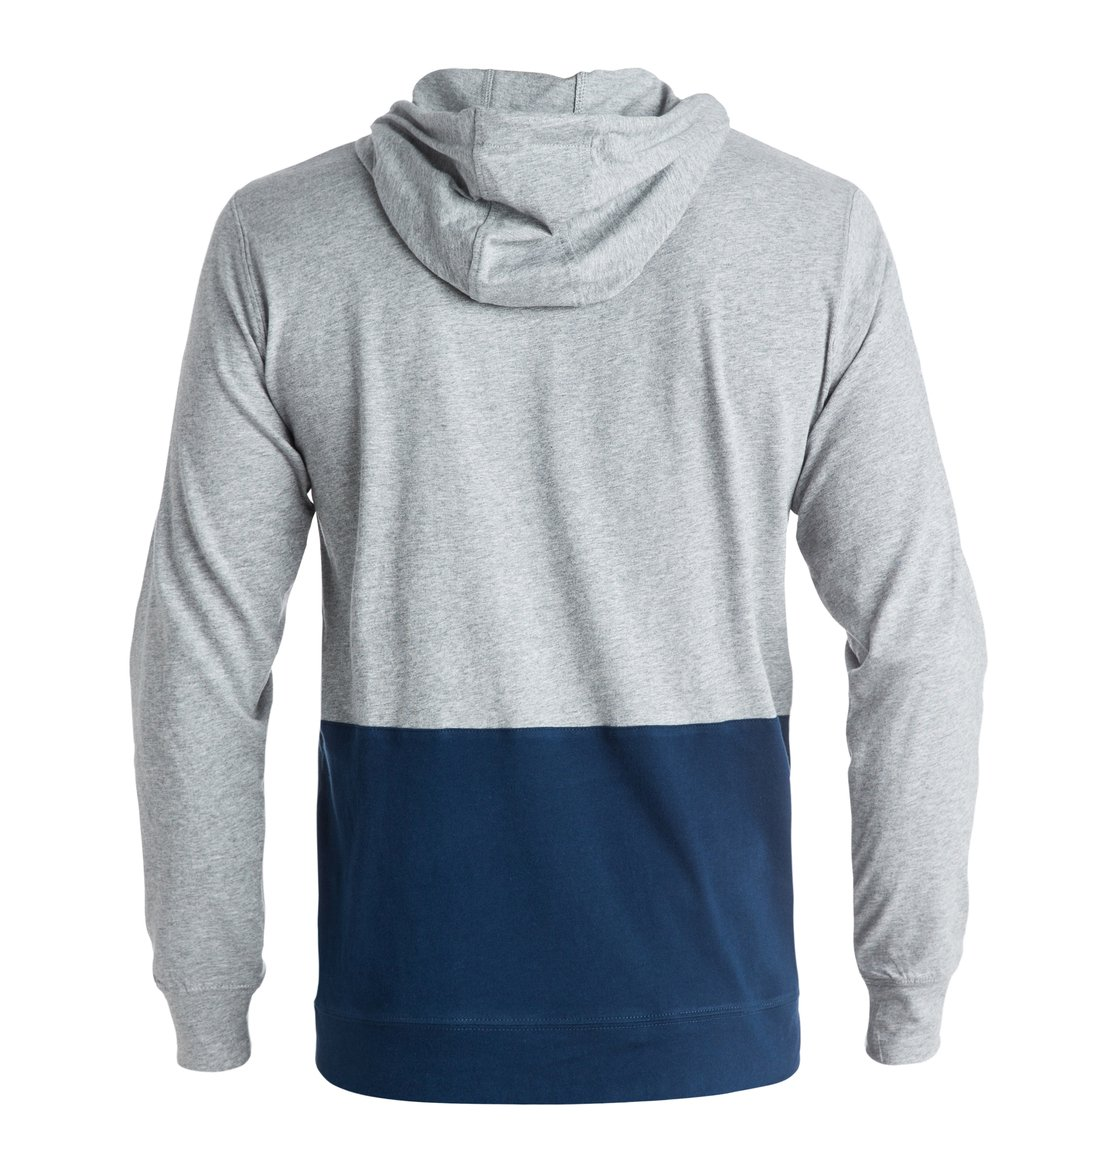 DC Shoes™ Heroland - Hooded Long Sleeve T-Shirt - Hombre